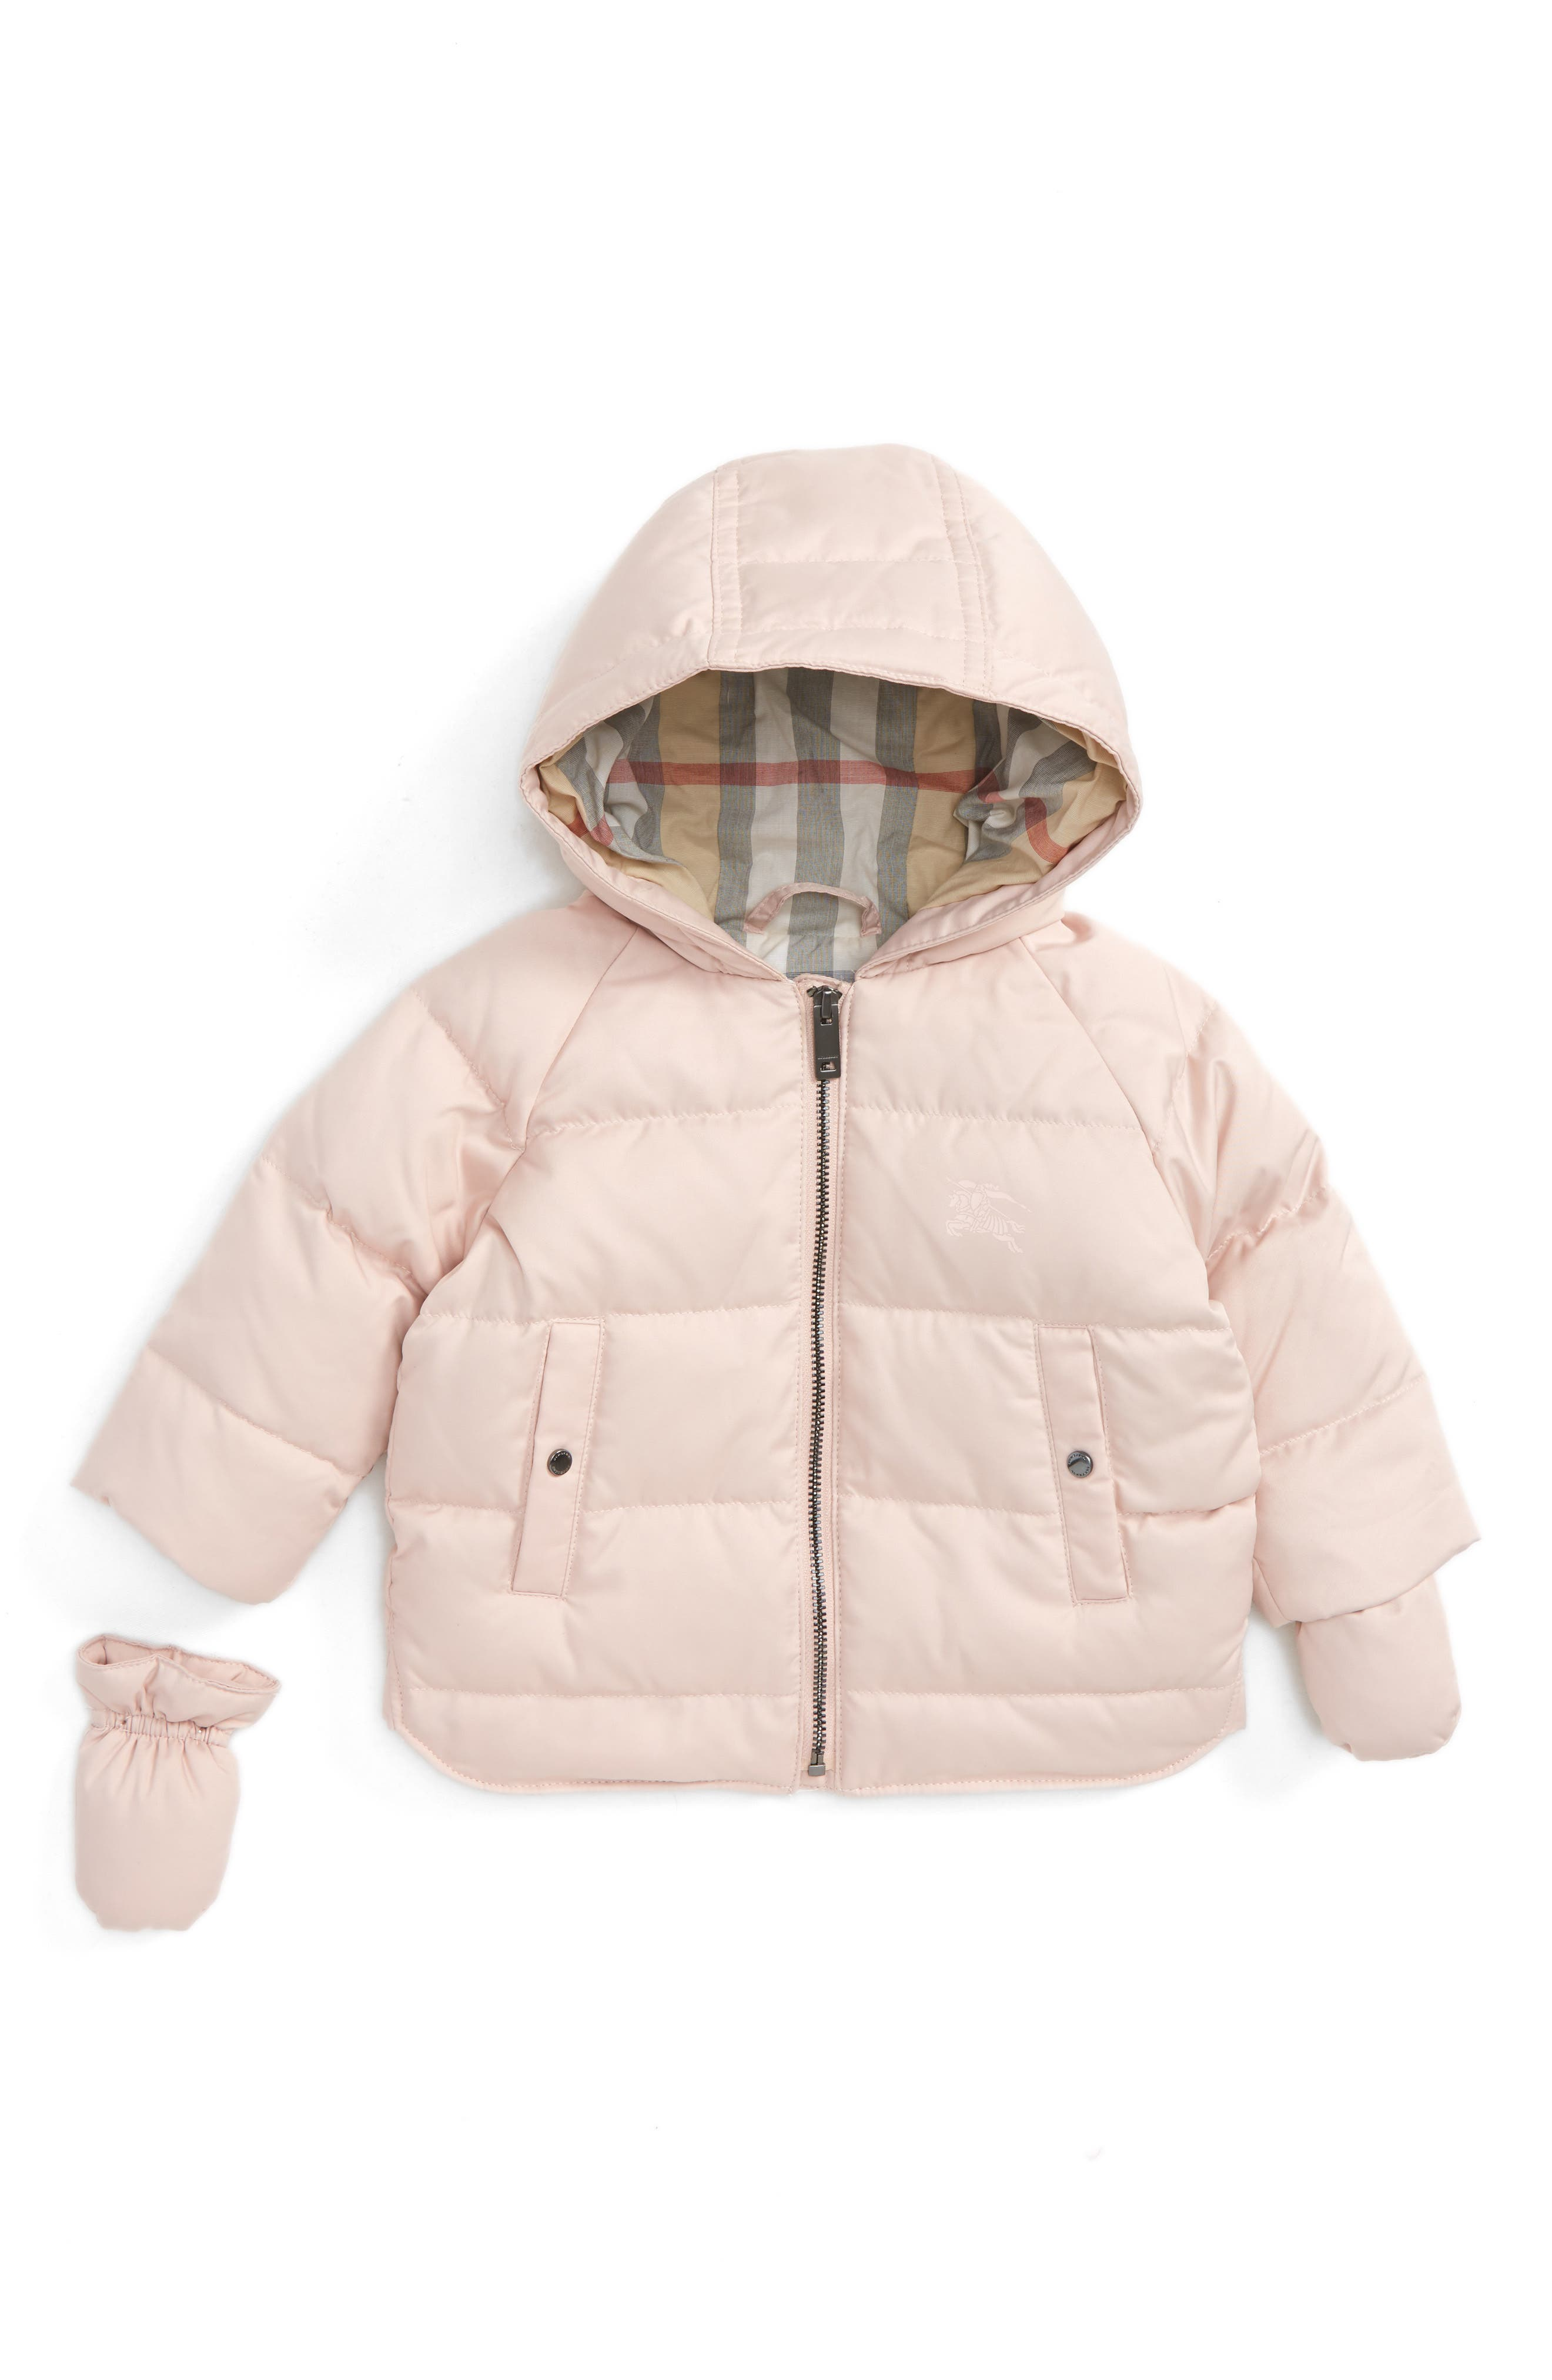 Main Image - Burberry Rilla Hooded Down Jacket with Mittens (Baby Girls)